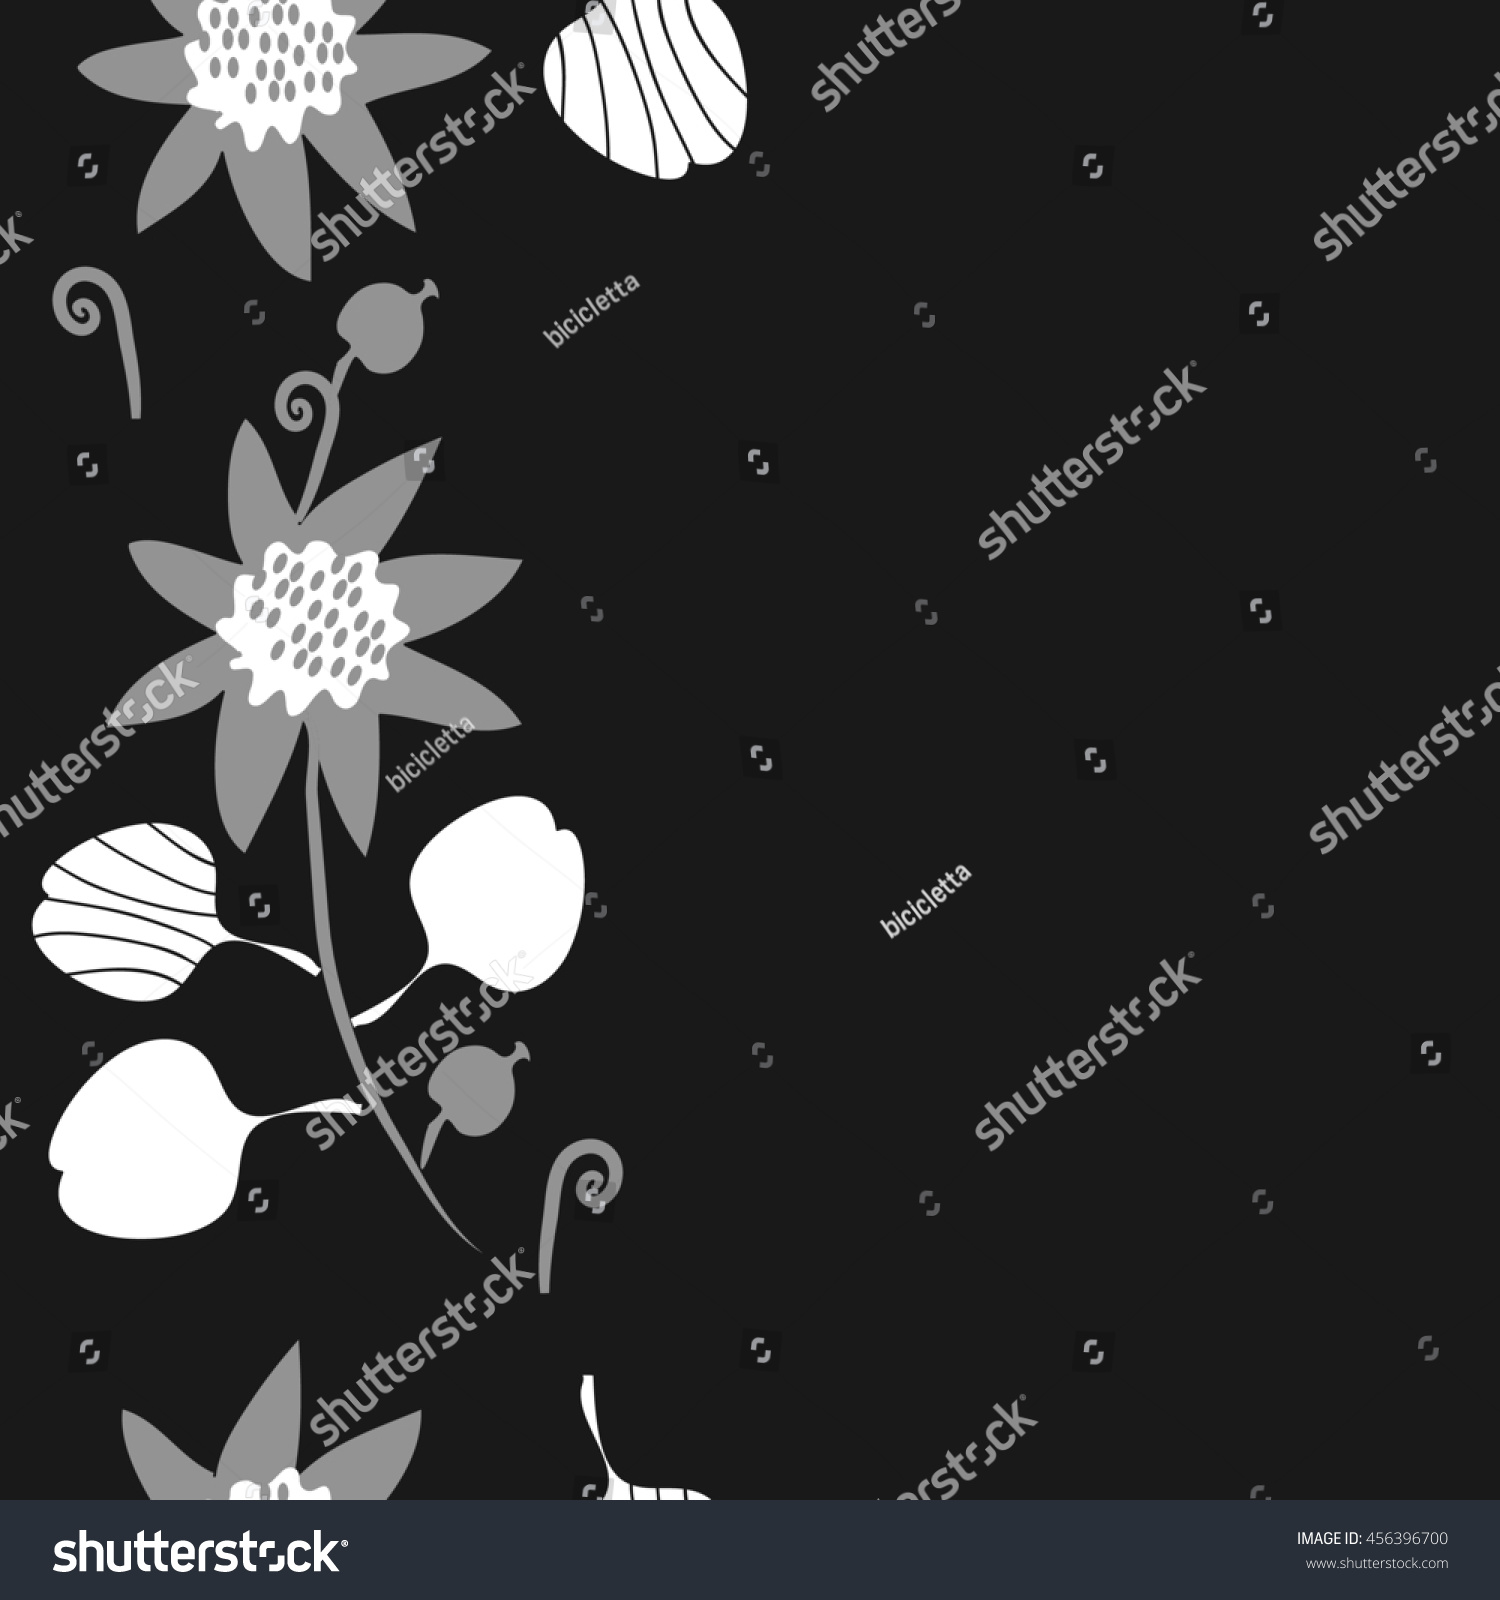 Seamless vertical pattern of floral motif doodles flowers leaves spot hole spiral branch object Hand drawn